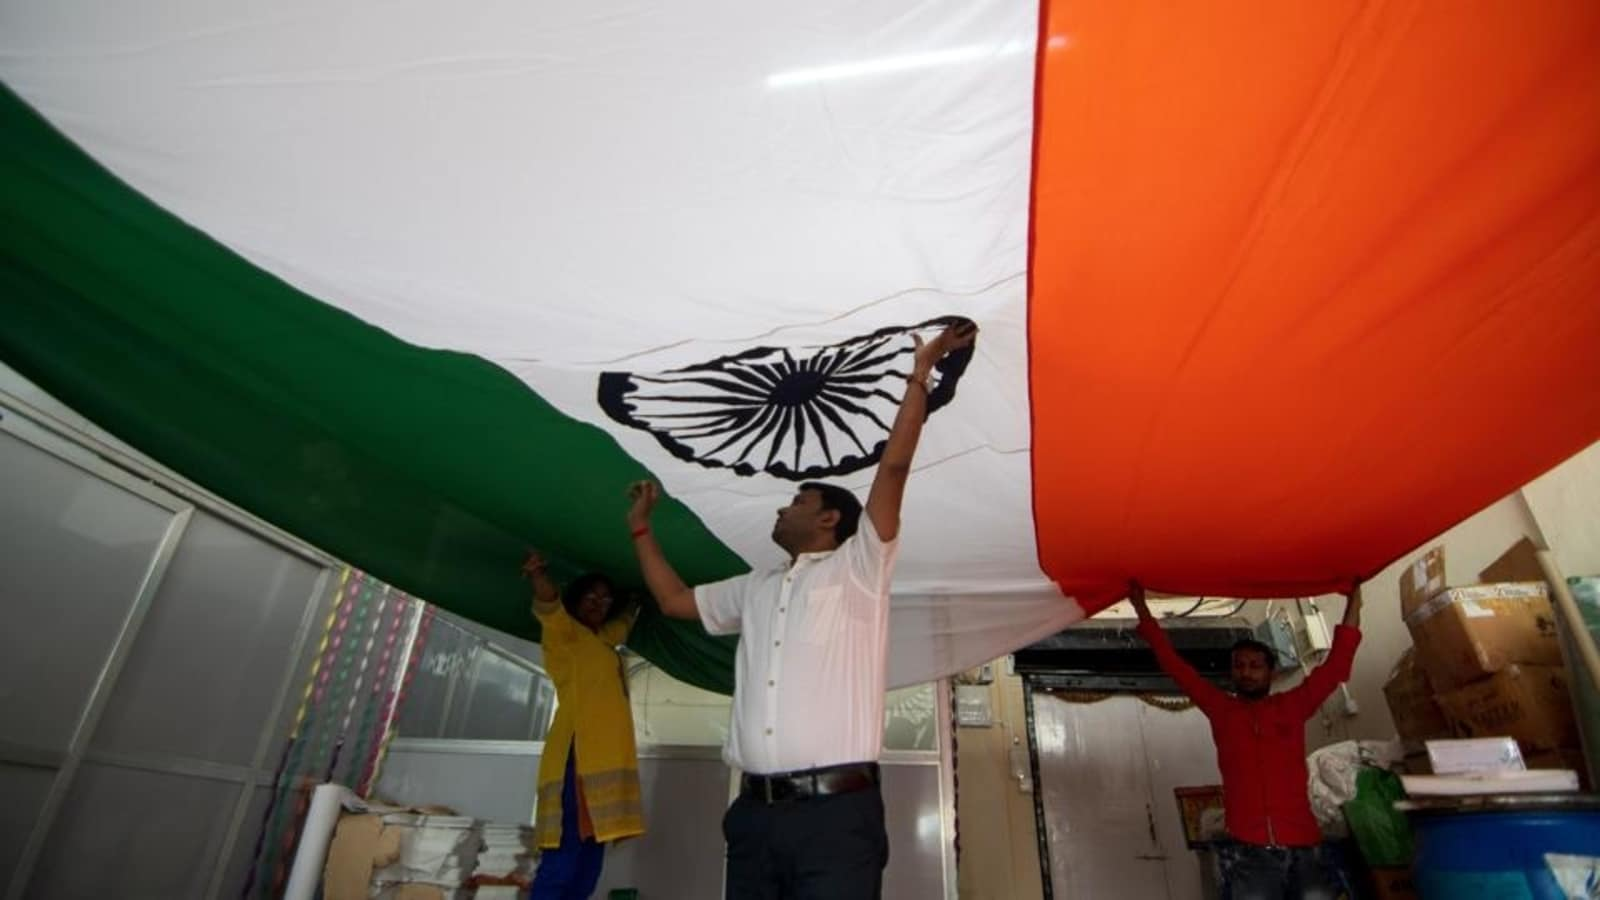 Ahead of Republic Day, MHA asks people not to use plastic flags | Hindustan Times